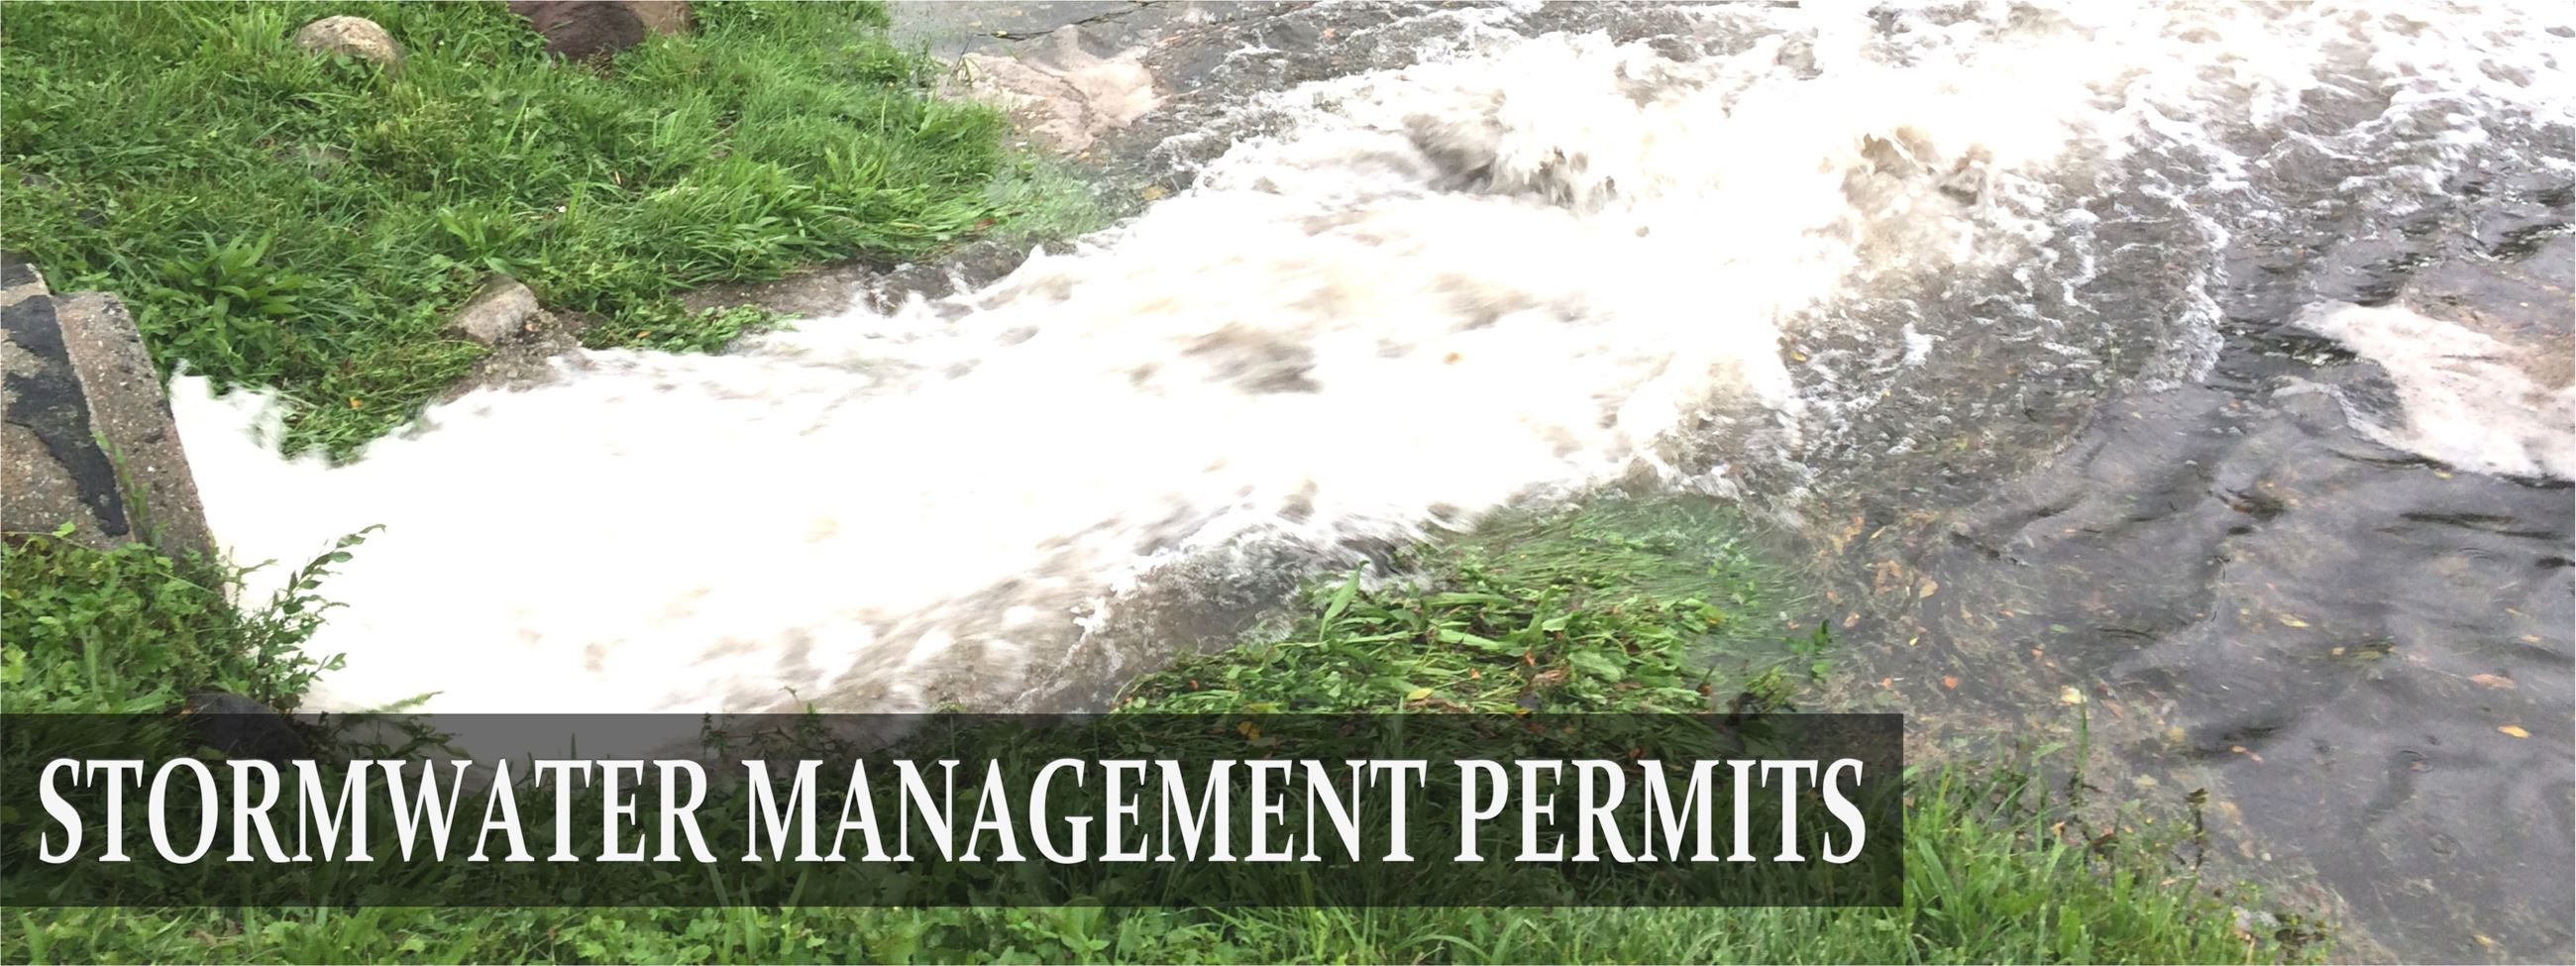 STORMWATER PERMITS